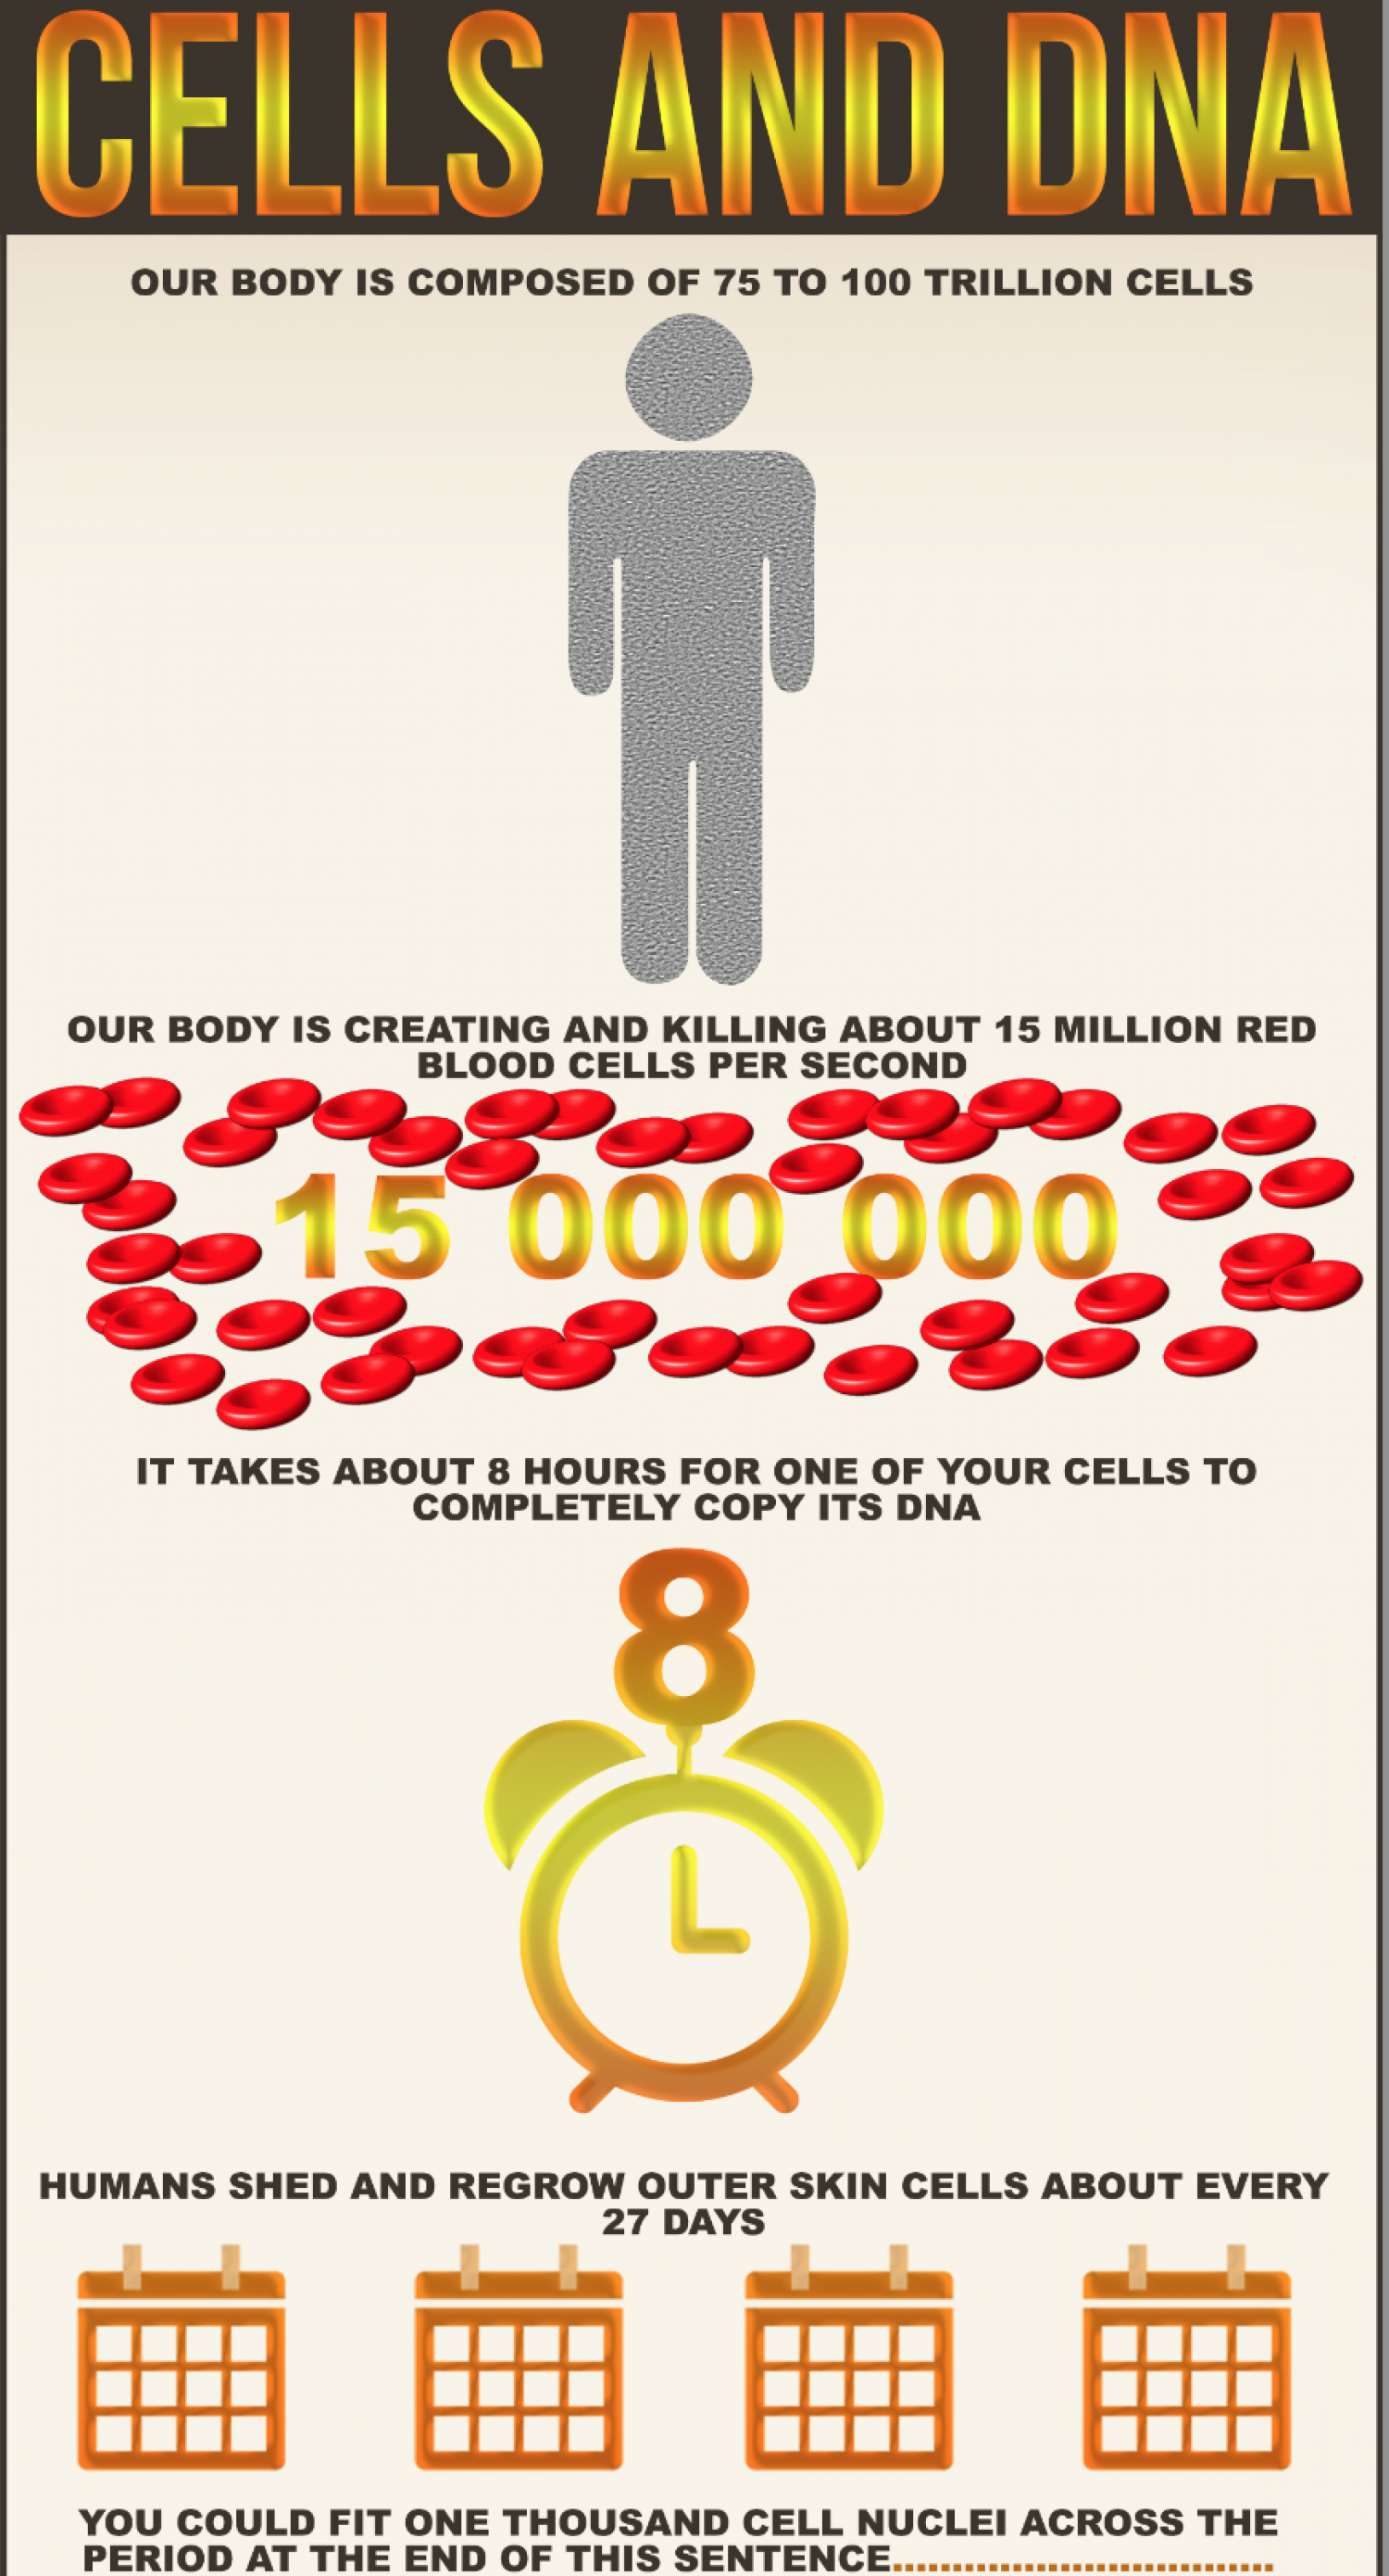 Cells and DNA Infographic